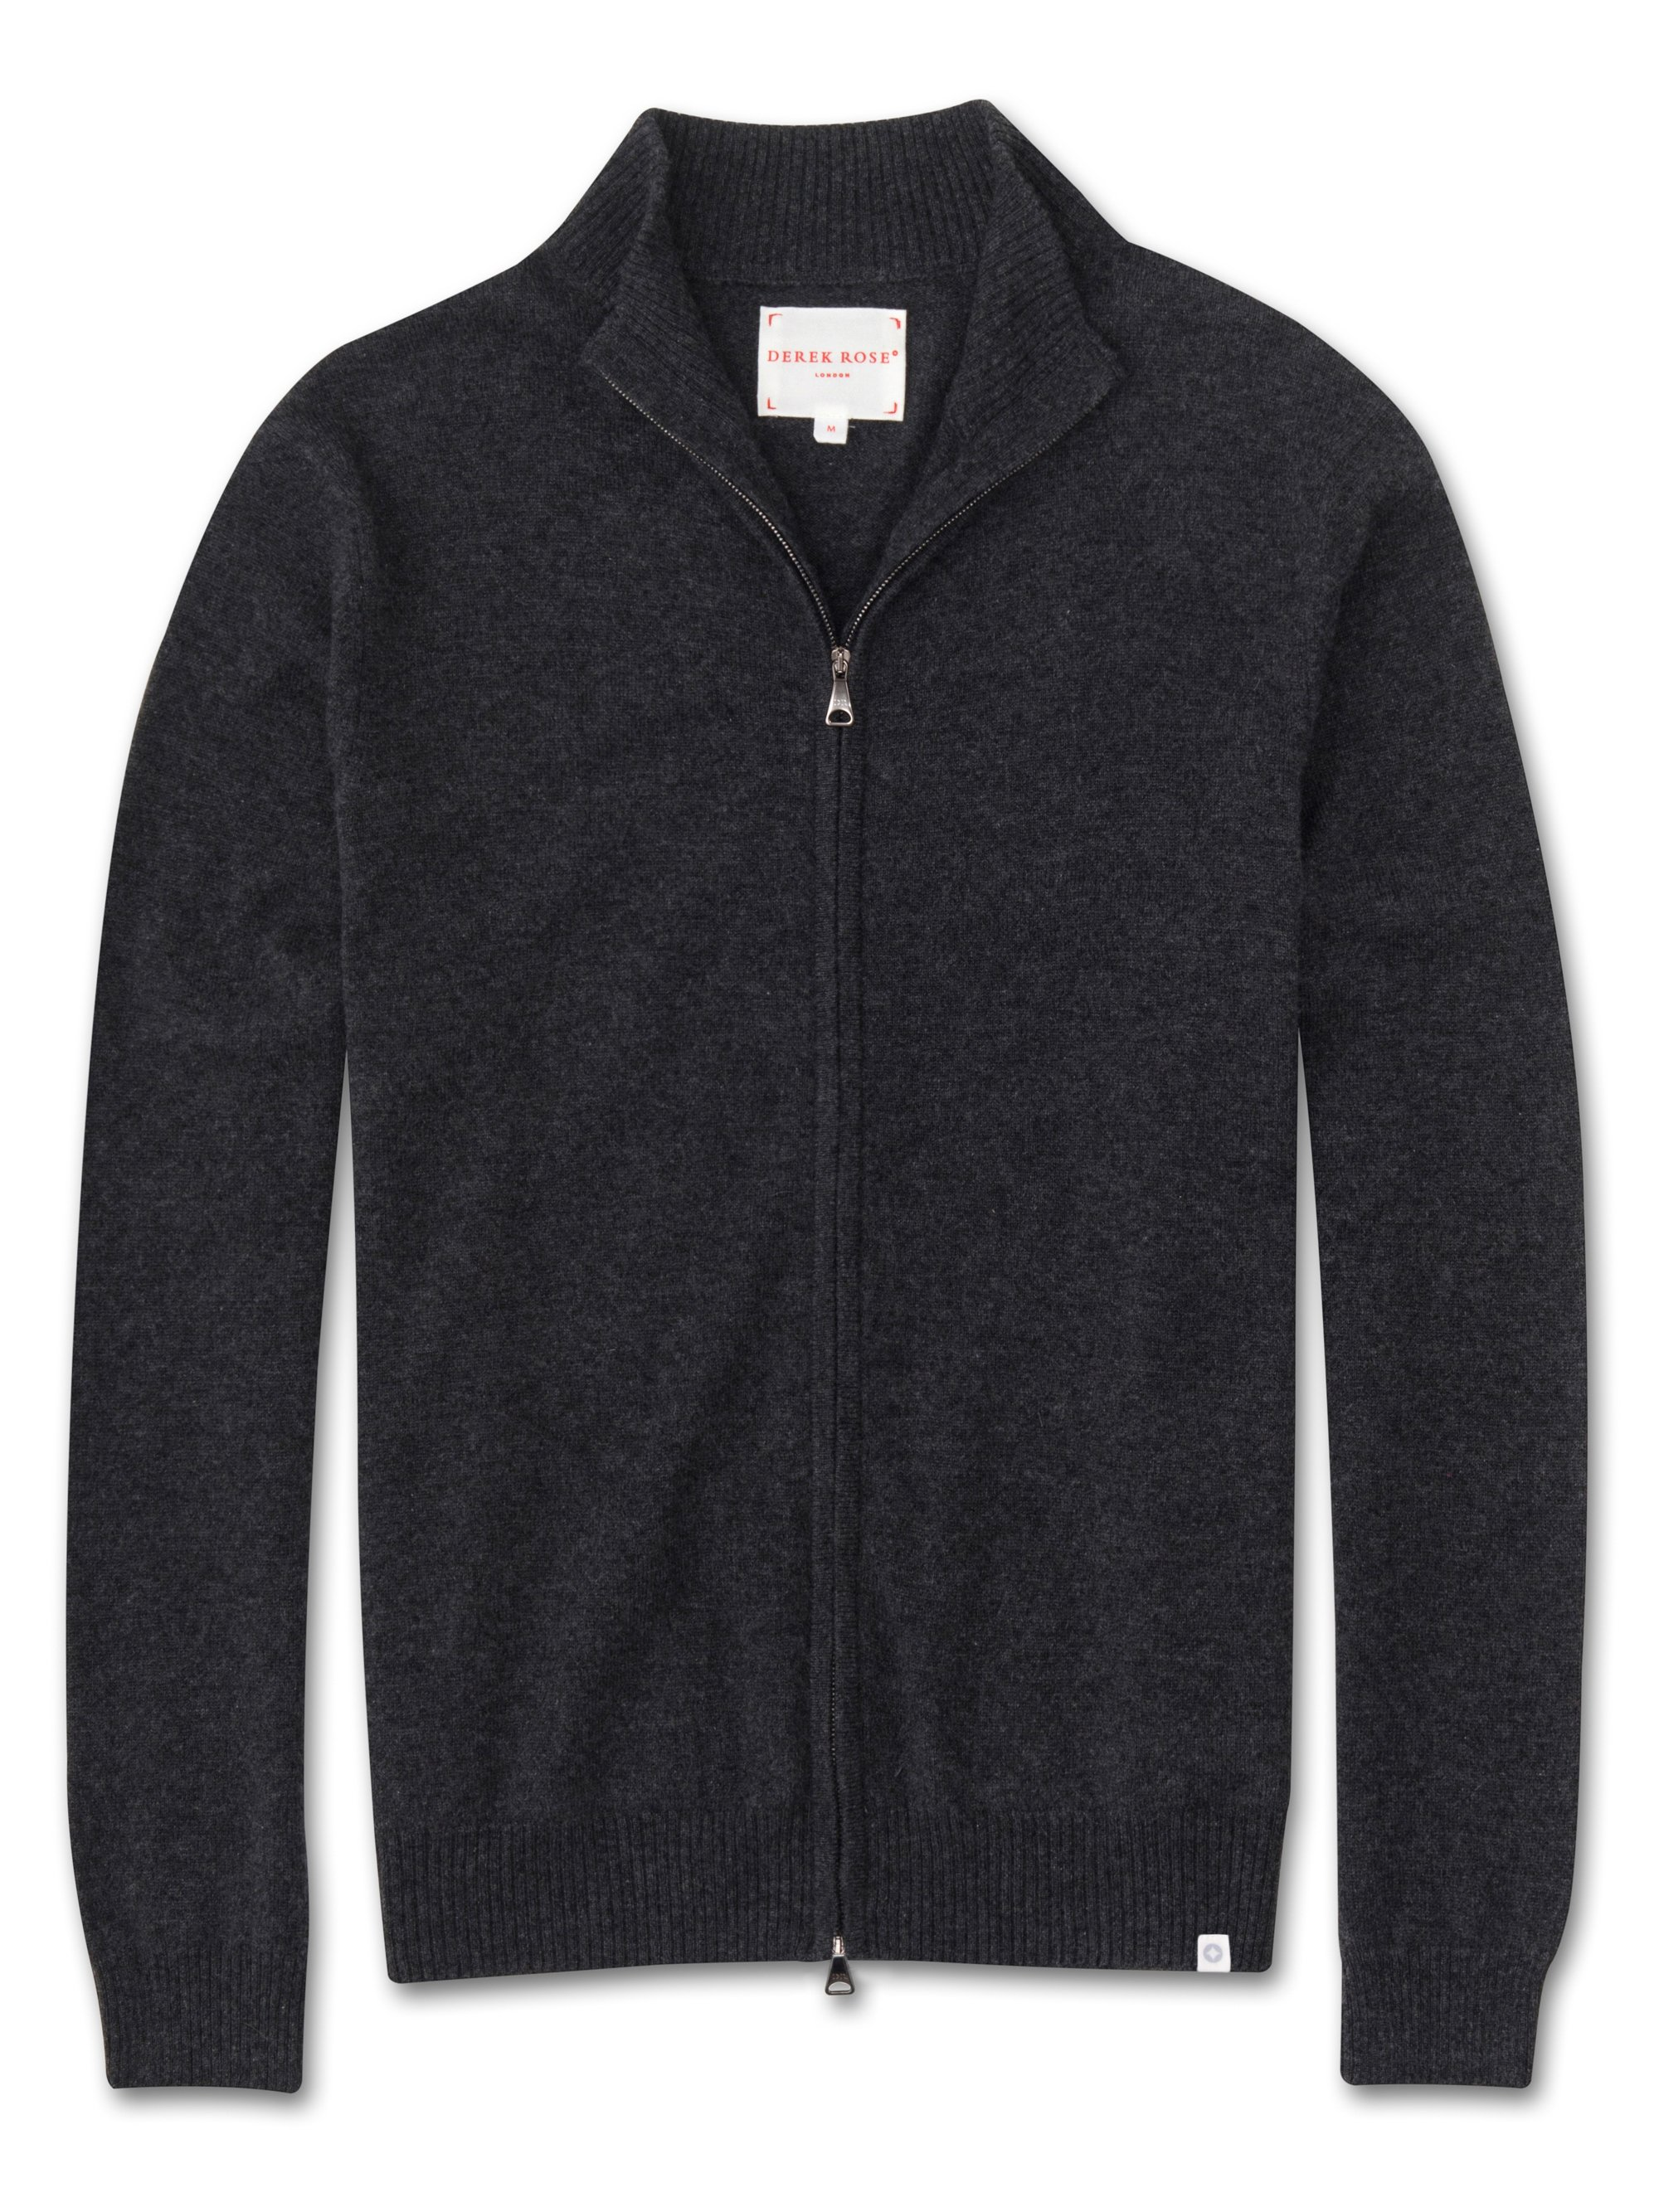 Men's Cashmere Zip-Up Top Finley Pure Cashmere Charcoal